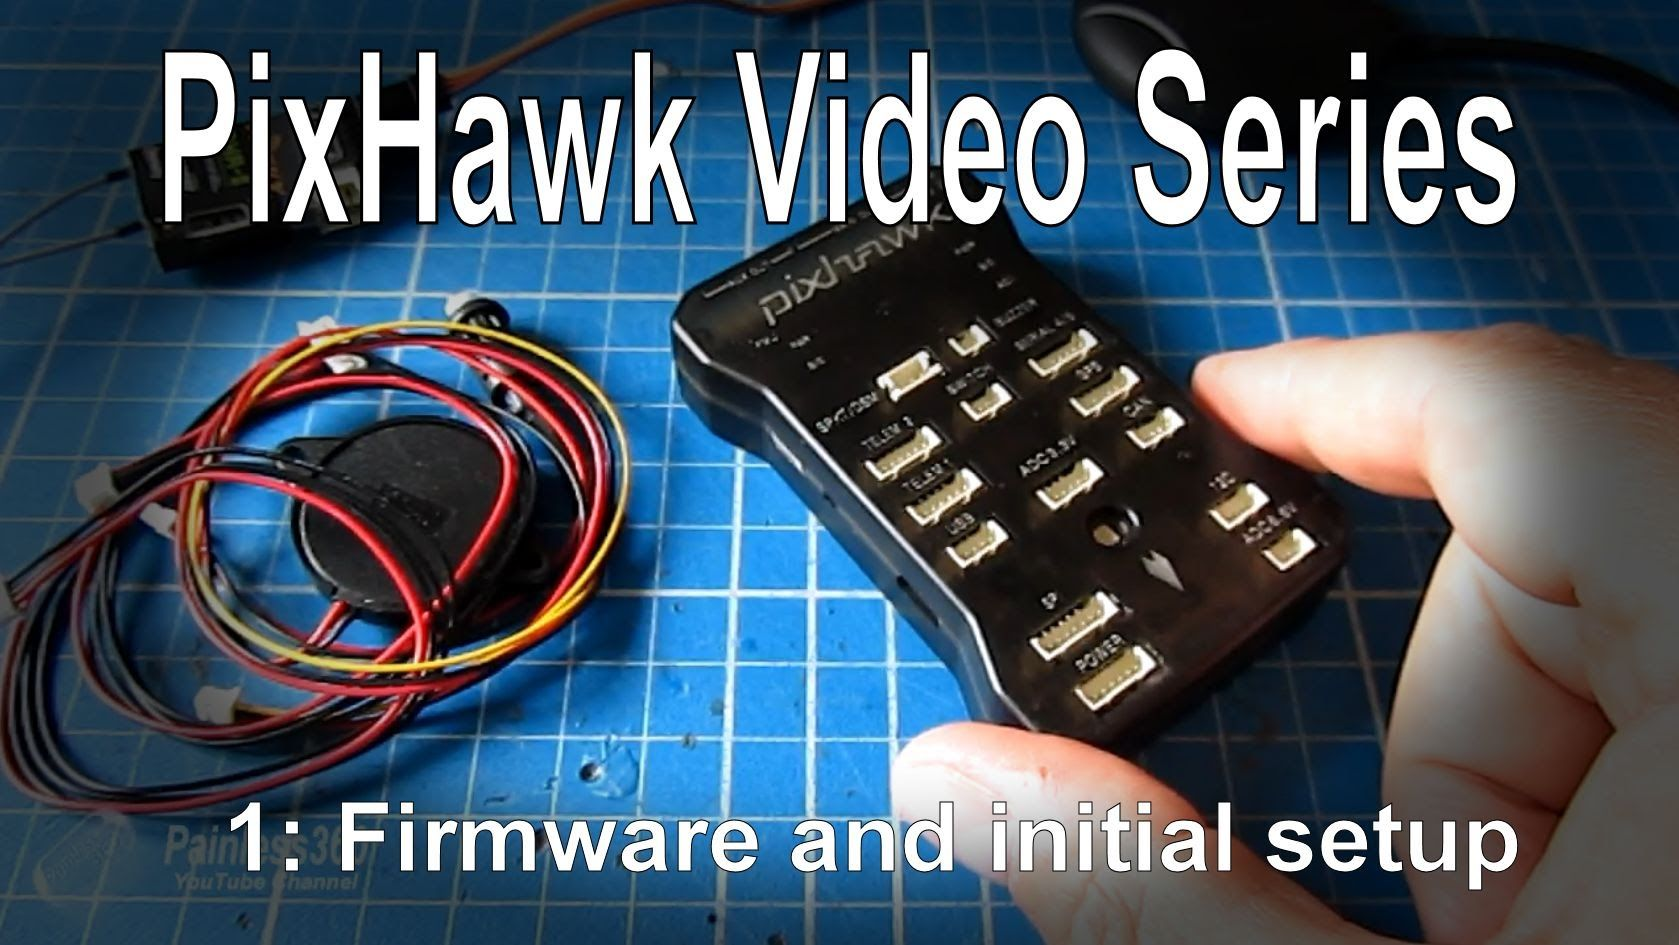 1/1) PixHawk Video Series - Simple initial setup, config and